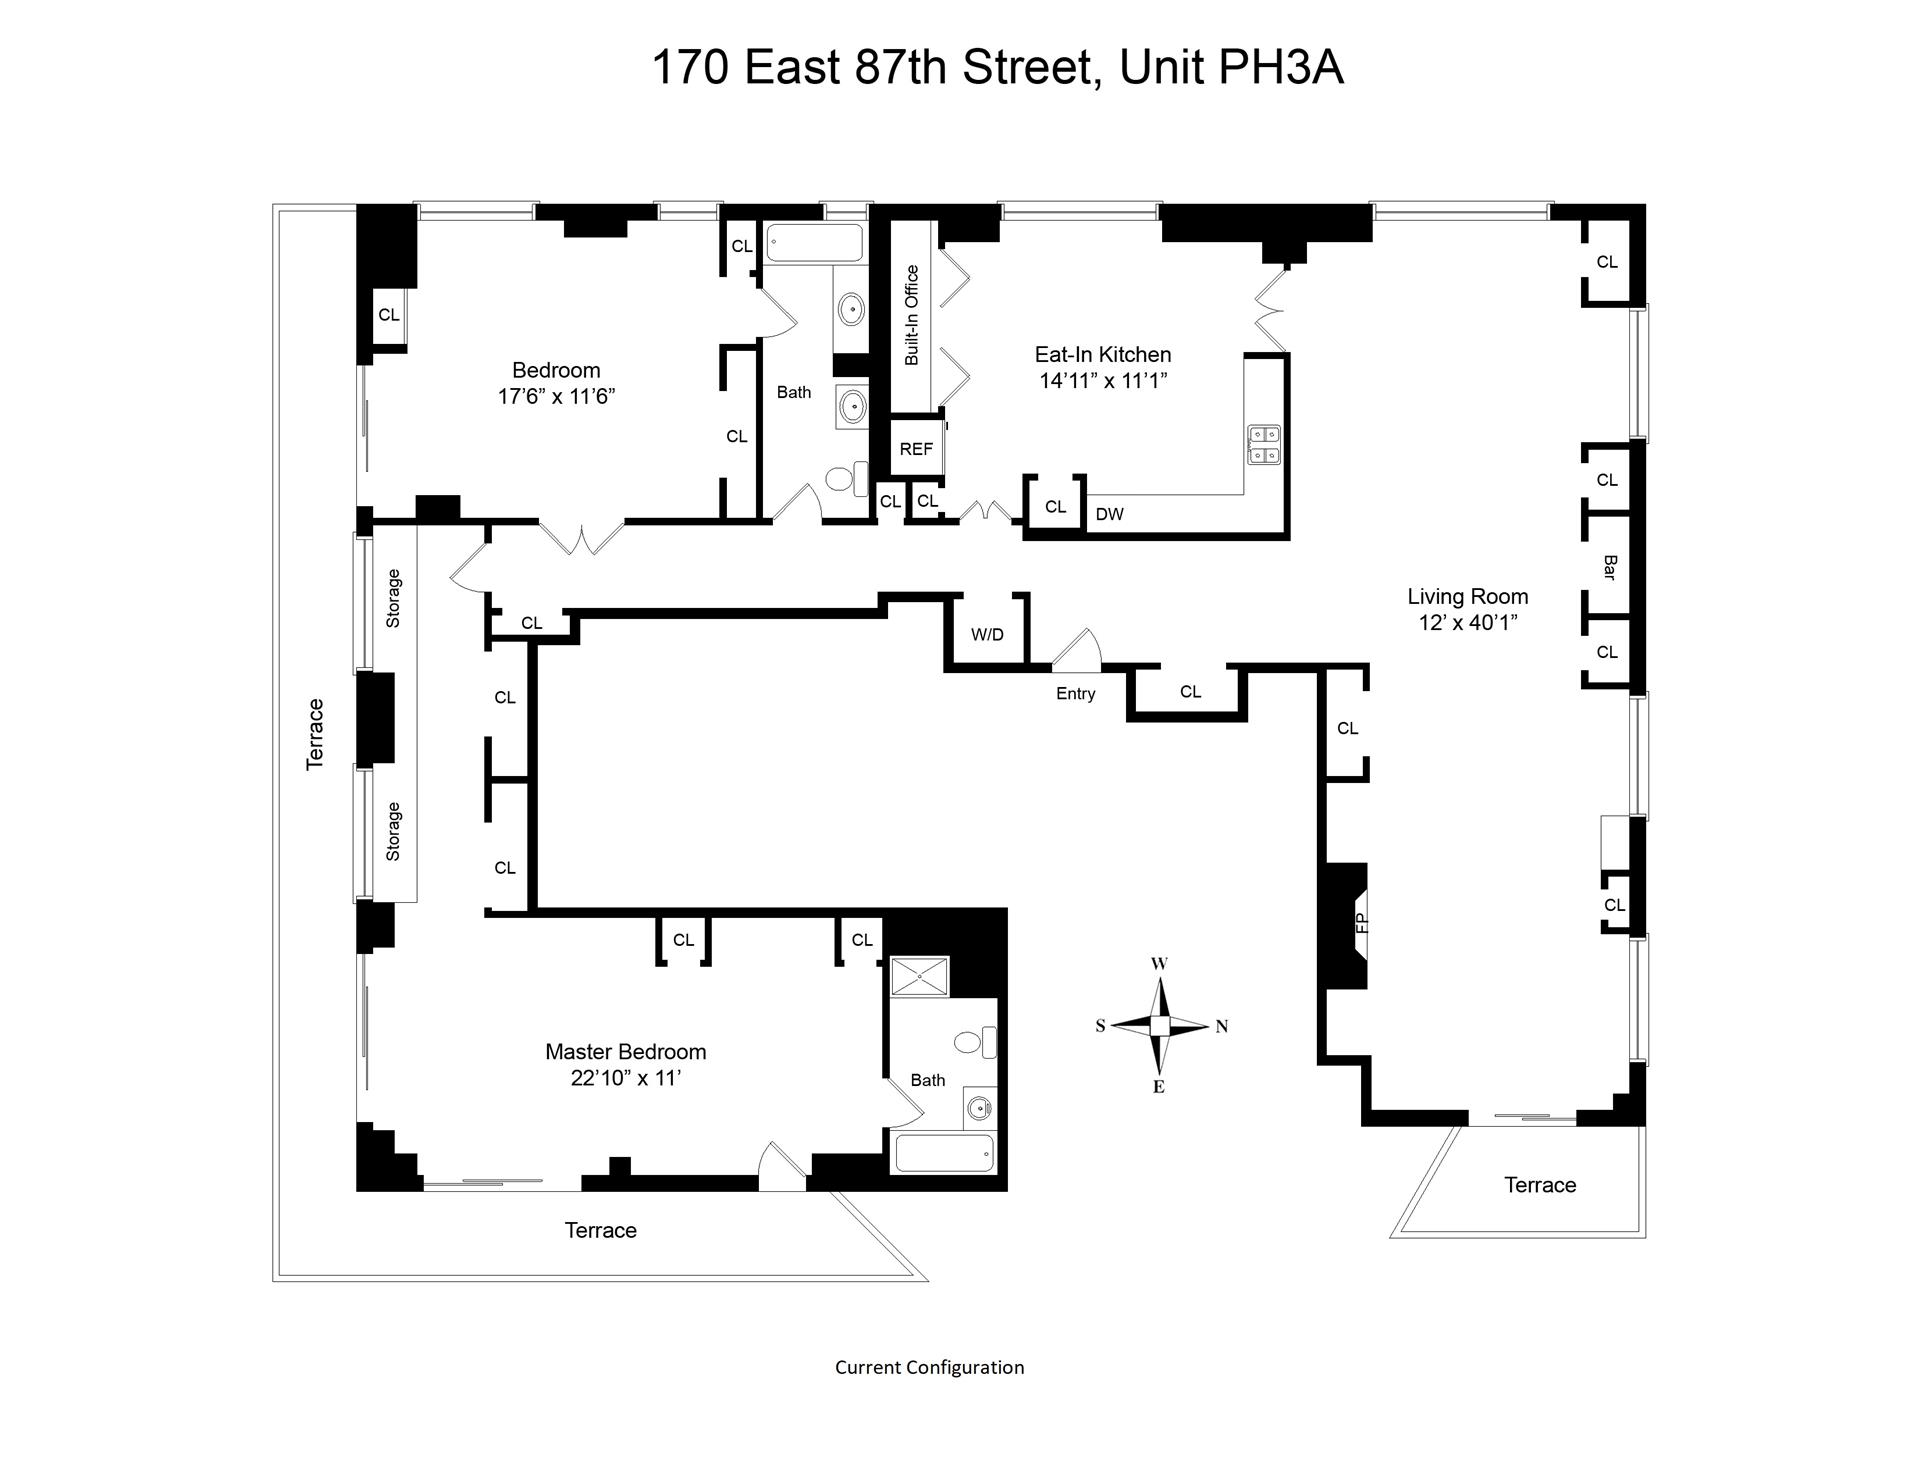 Floor plan of 170 East 87th St, PH3 - Upper East Side, New York